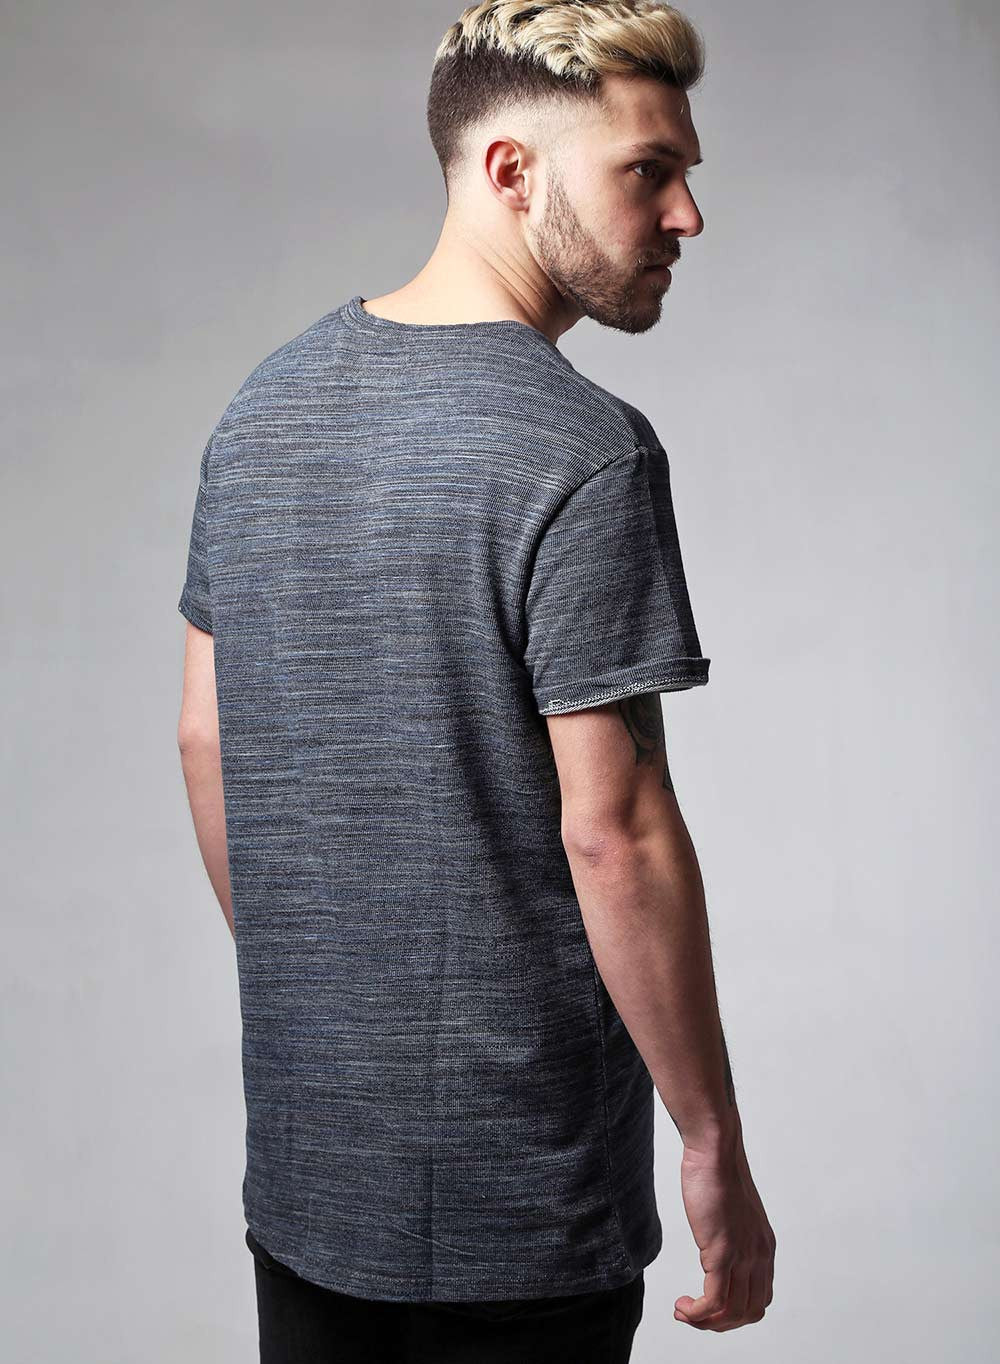 Heavy Knit Textured T-shirt - LoveClothing.com - 3